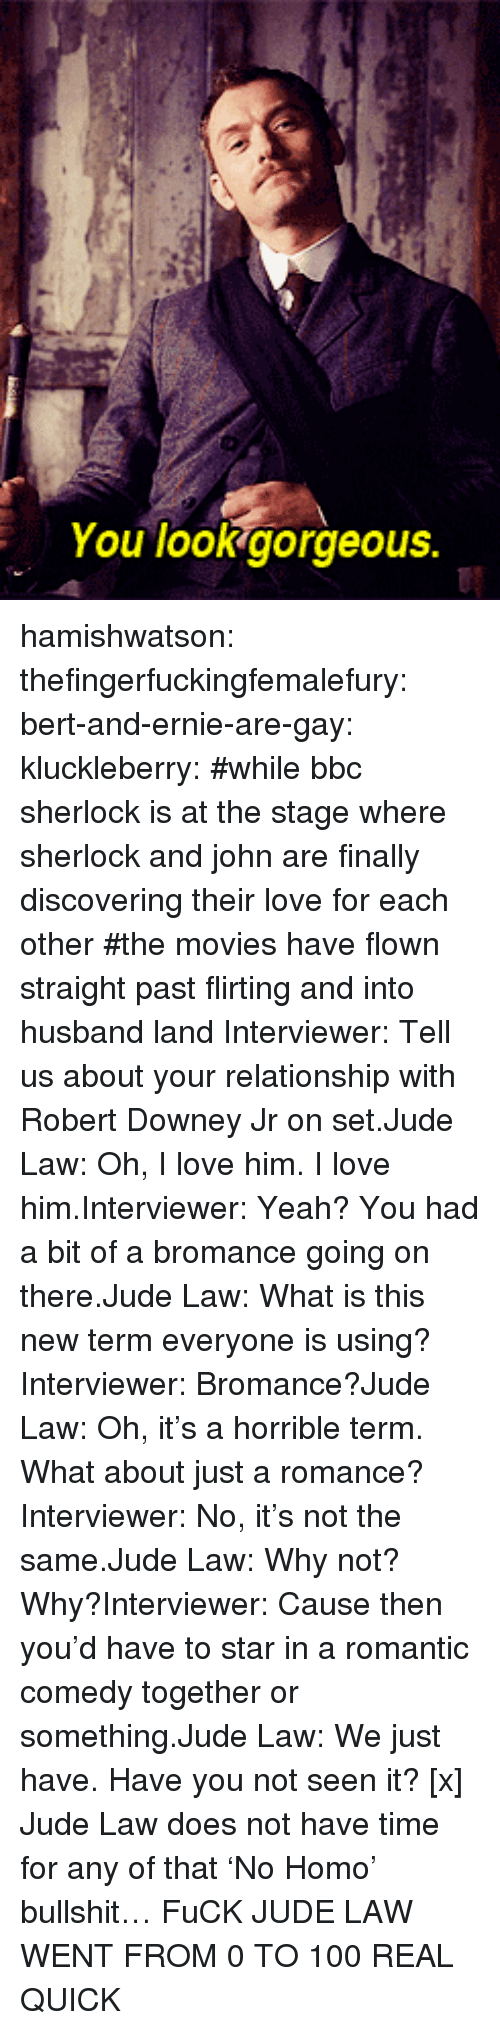 Robert Downey Jr.: You lookgorgeous. hamishwatson: thefingerfuckingfemalefury:  bert-and-ernie-are-gay:  kluckleberry: #while bbc sherlock is at the stage where sherlock and john are finally discovering their love for each other #the movies have flown straight past flirting and into husband land Interviewer: Tell us about your relationship with Robert Downey Jr on set.Jude Law: Oh, I love him. I love him.Interviewer: Yeah? You had a bit of a bromance going on there.Jude Law: What is this new term everyone is using?Interviewer: Bromance?Jude Law: Oh, it's a horrible term. What about just a romance?Interviewer: No, it's not the same.Jude Law: Why not? Why?Interviewer: Cause then you'd have to star in a romantic comedy together or something.Jude Law: We just have. Have you not seen it? [x]  Jude Law does not have time for any of that 'No Homo' bullshit…  FuCK JUDE LAW WENT FROM 0 TO 100 REAL QUICK